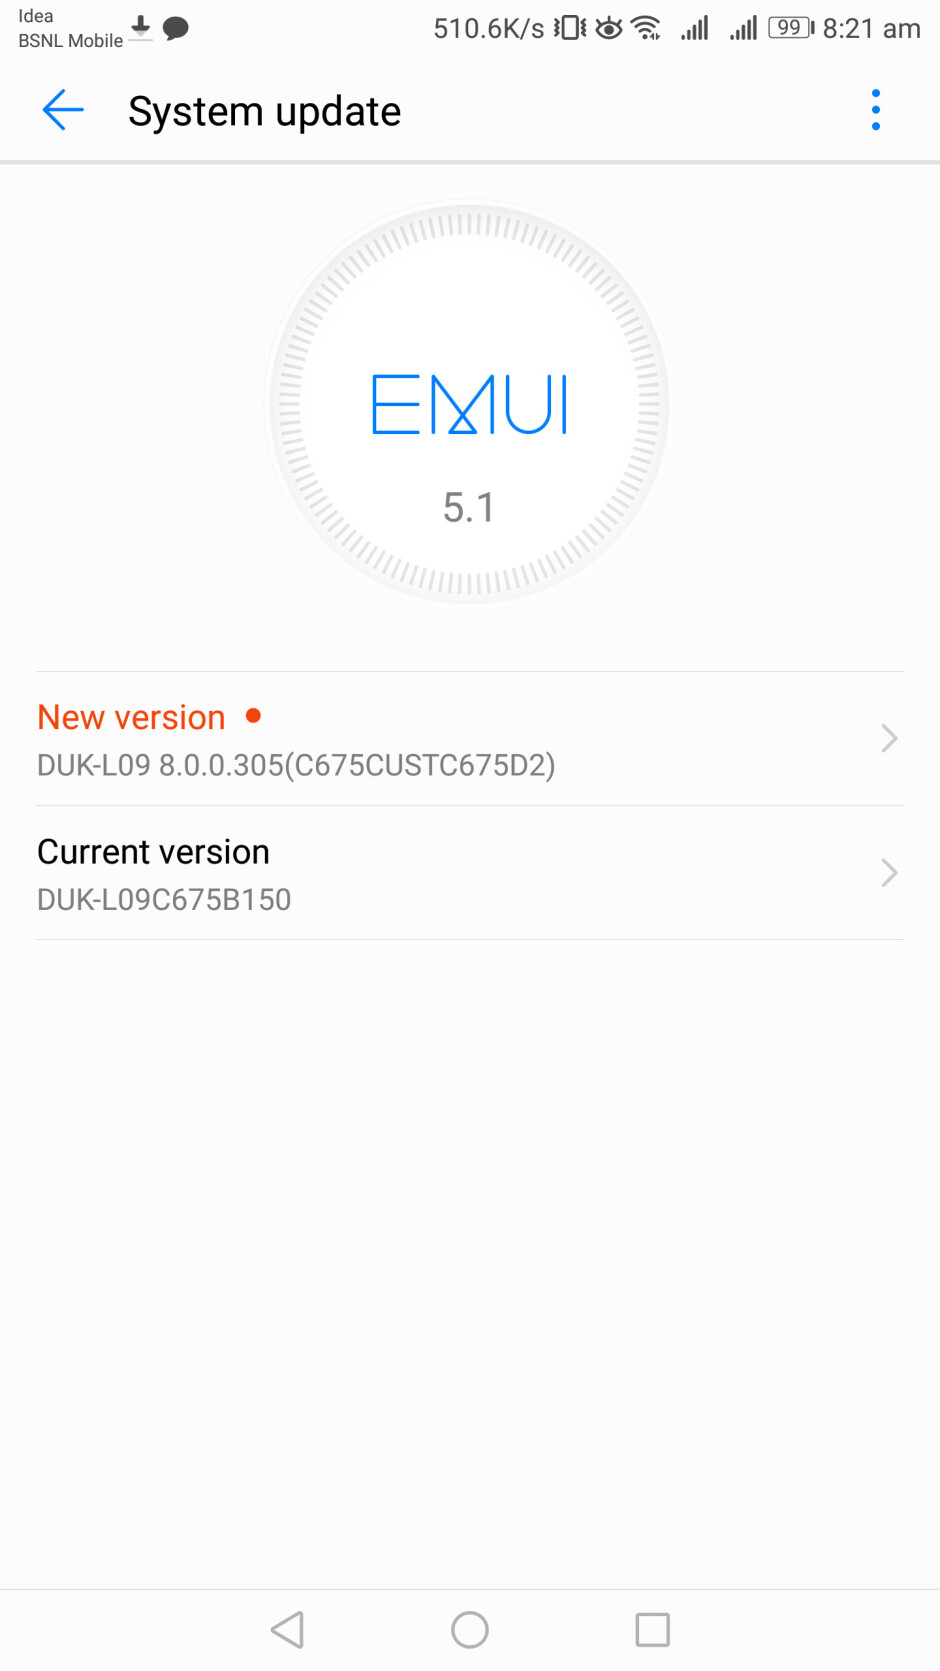 First Android Oreo beta arrives for Honor 8 Pro